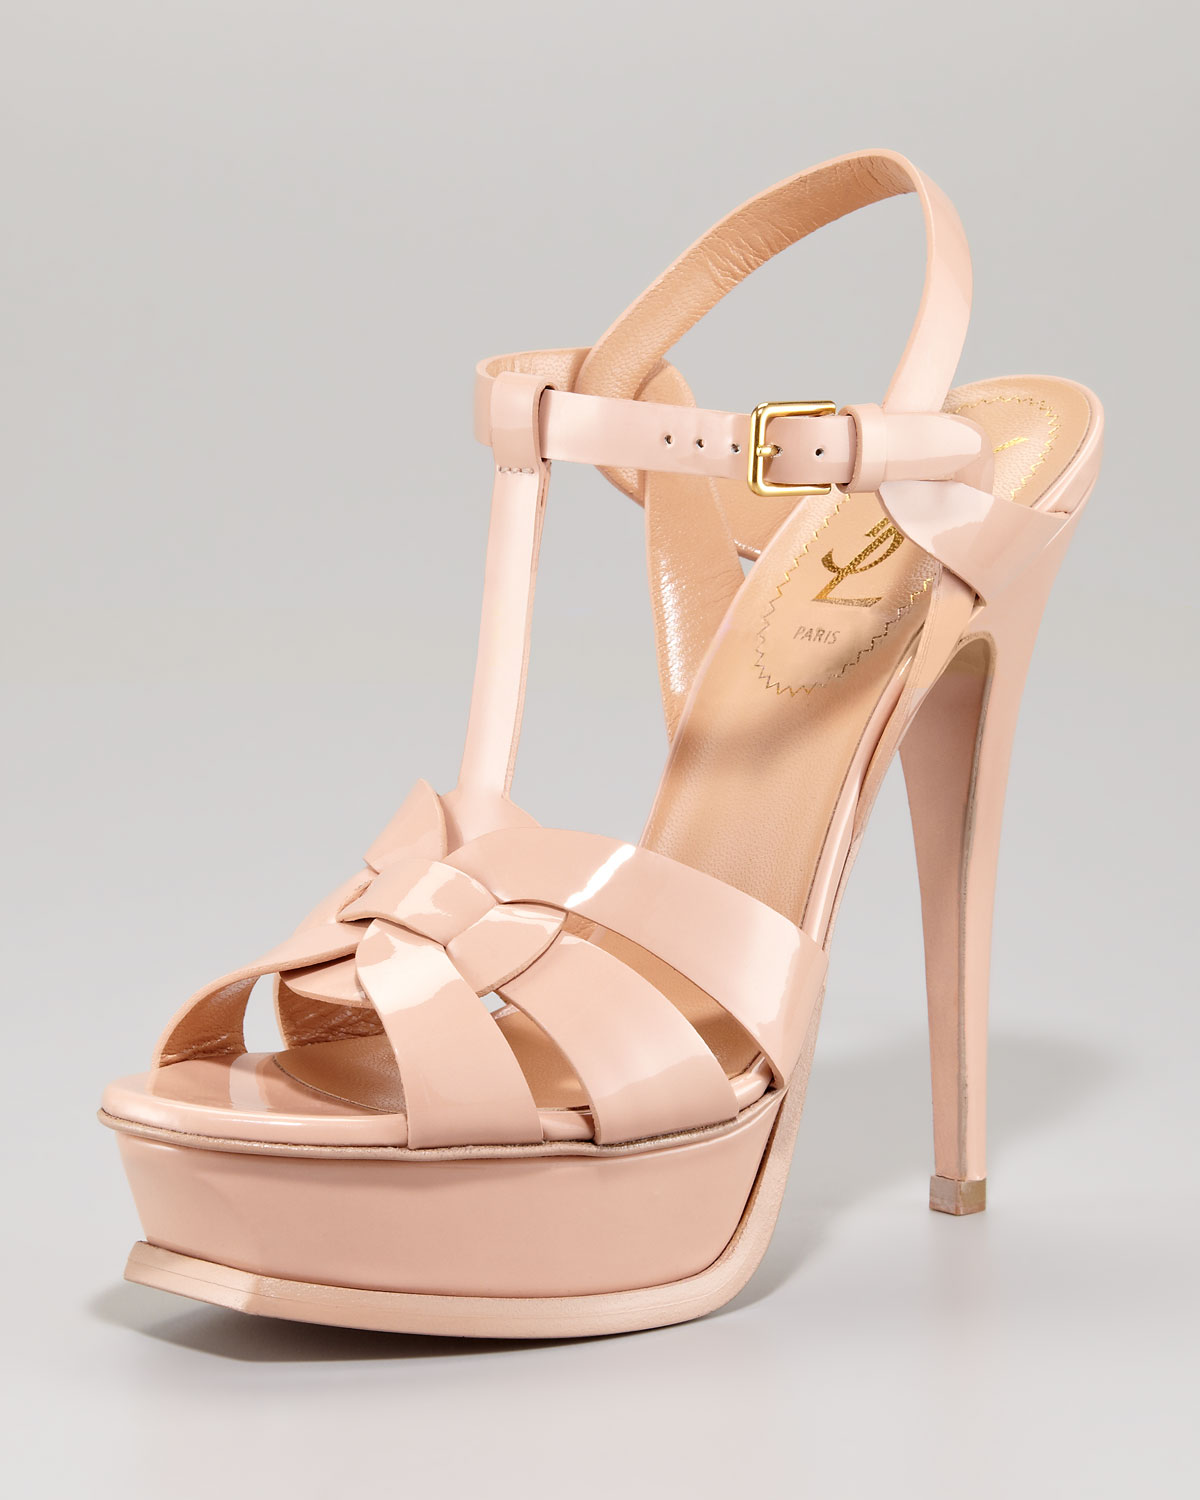 b8b481a2efdb Lyst - Saint Laurent Patent Leather Tribute Sandal in Natural